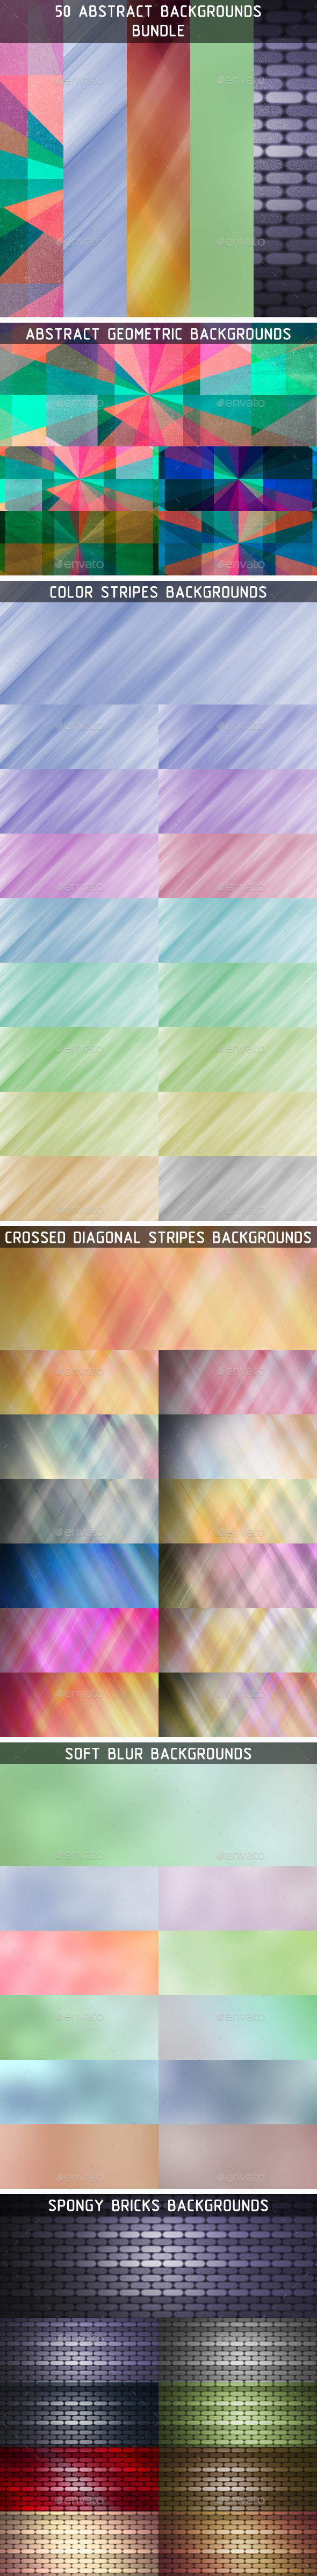 50 Abstract Backgrounds Bundle - Backgrounds Graphics